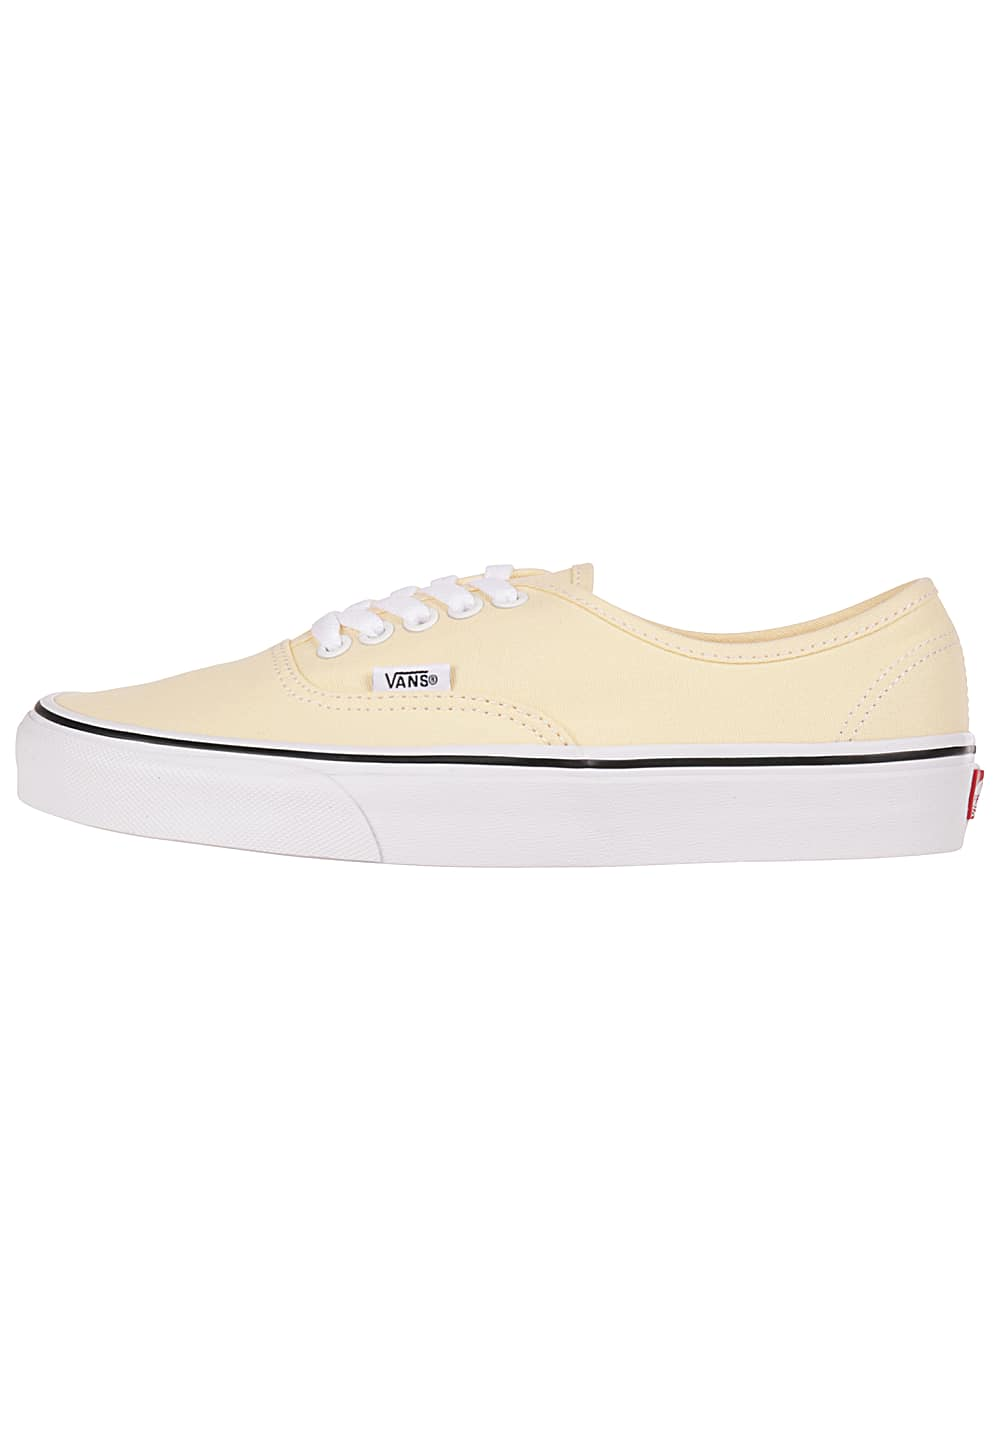 VANS Authentic - Sneaker für Damen - Gelb - Planet Sports